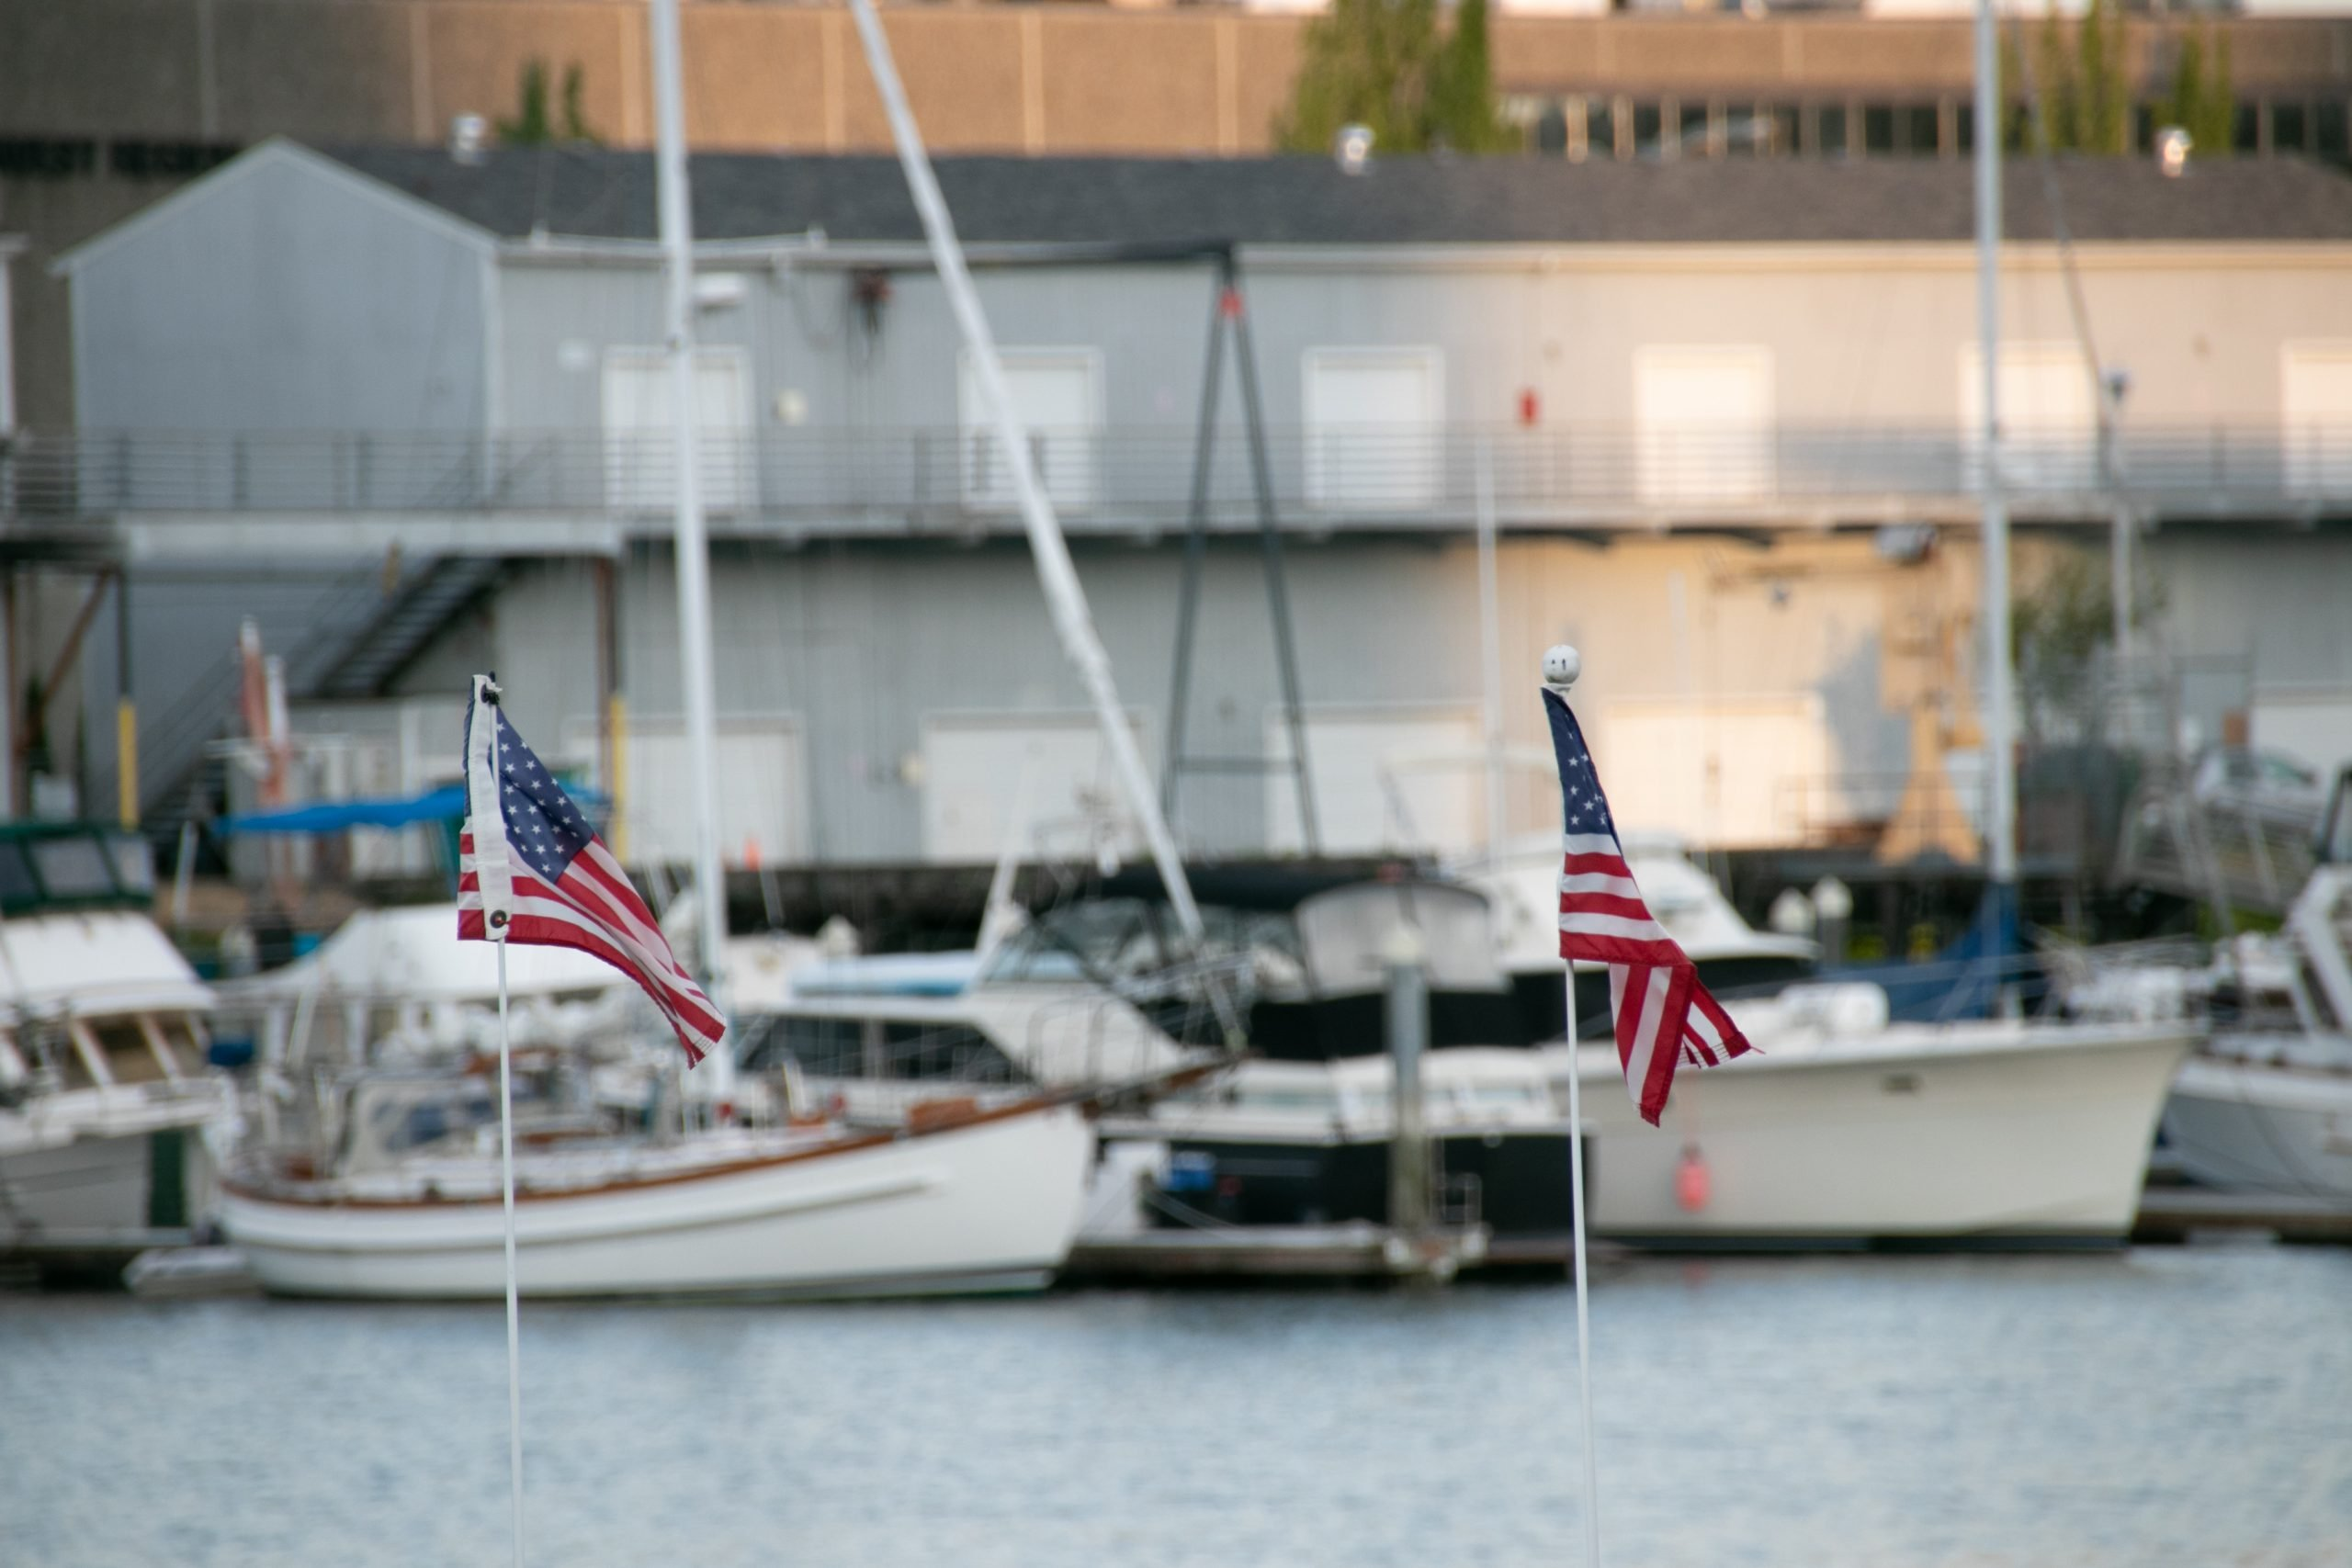 Two Small American Flags Near Docked Boats